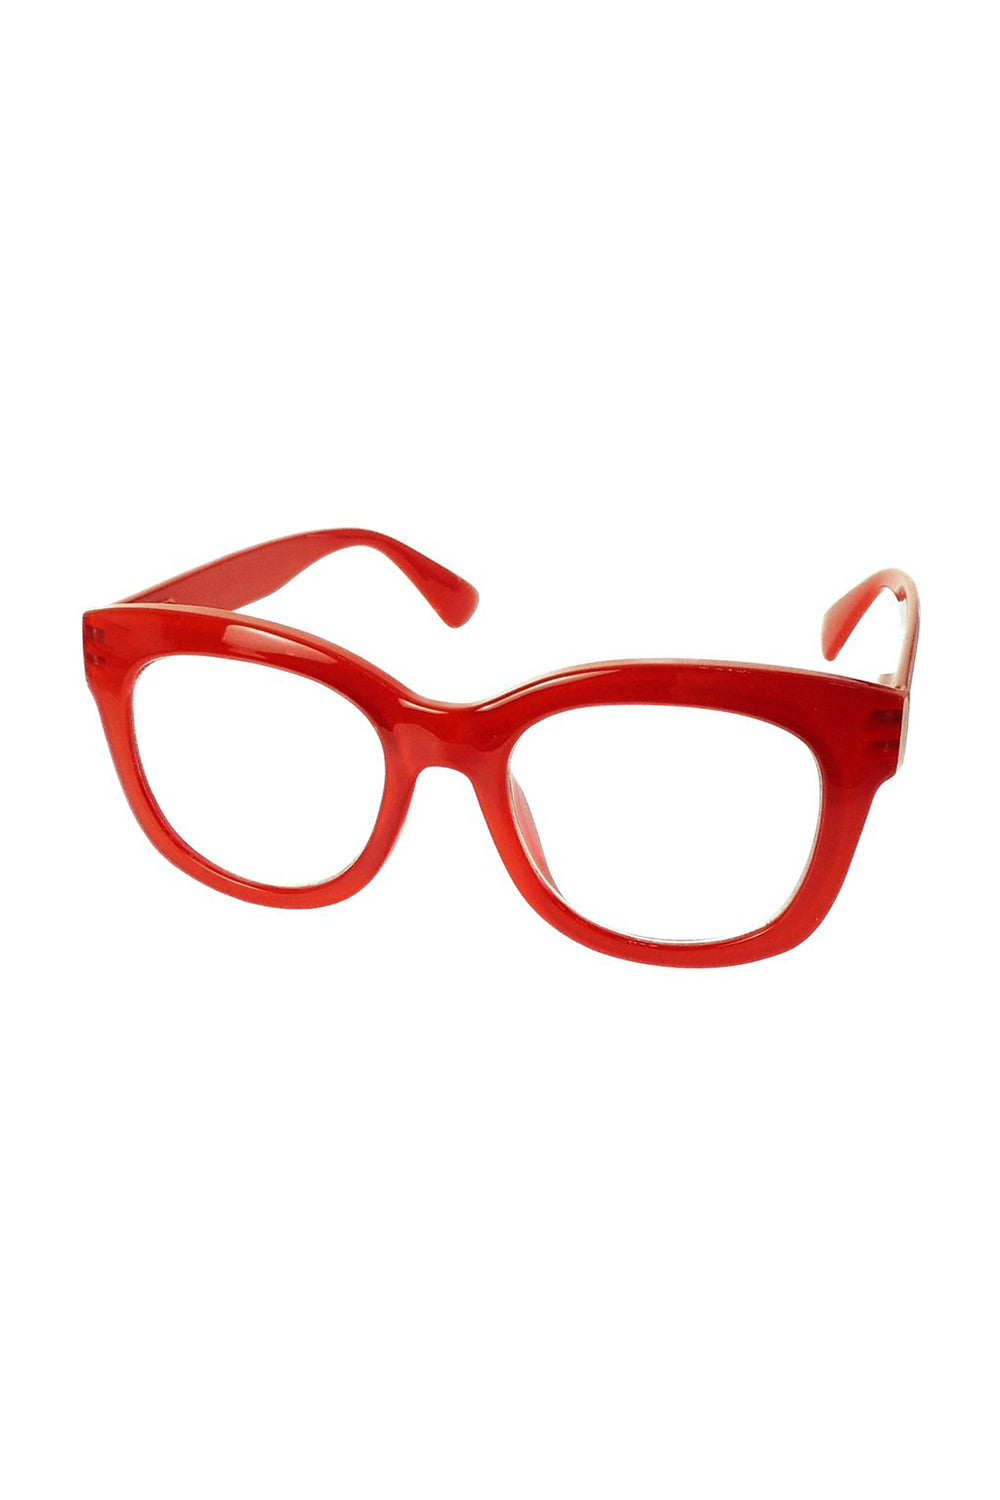 Captivated Eyewear / Reading Glasses / Magnification 1.5 / Red